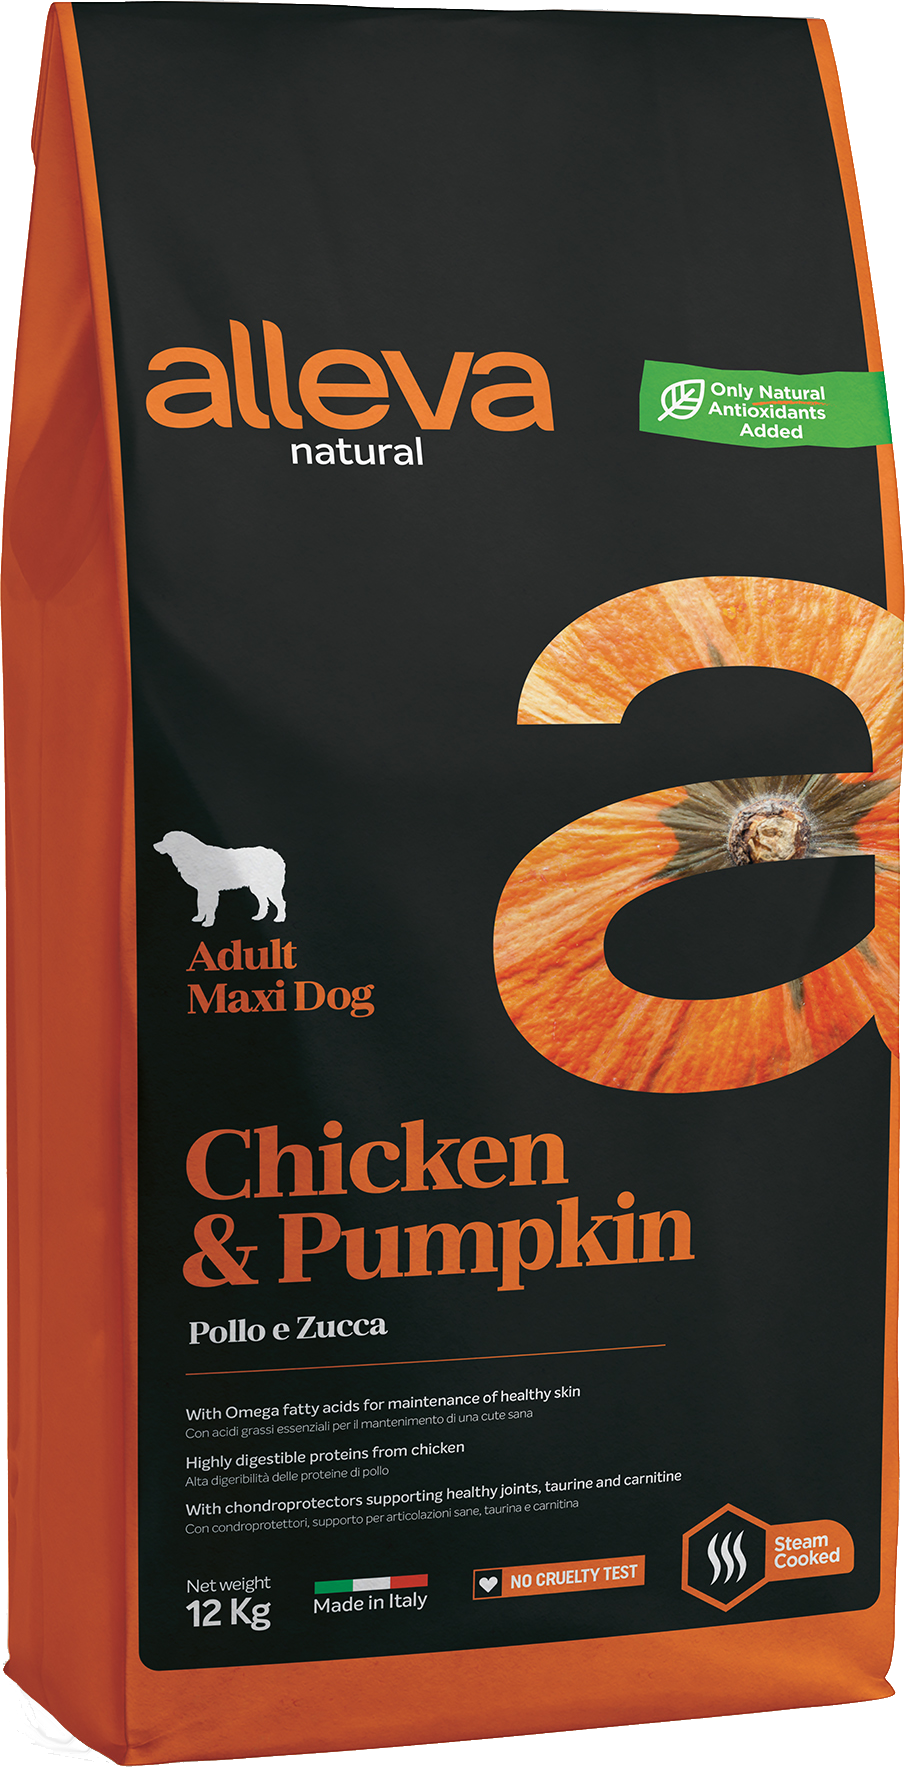 Alleva NATURAL dog chicken&pumpkin adult maxi 12 kg